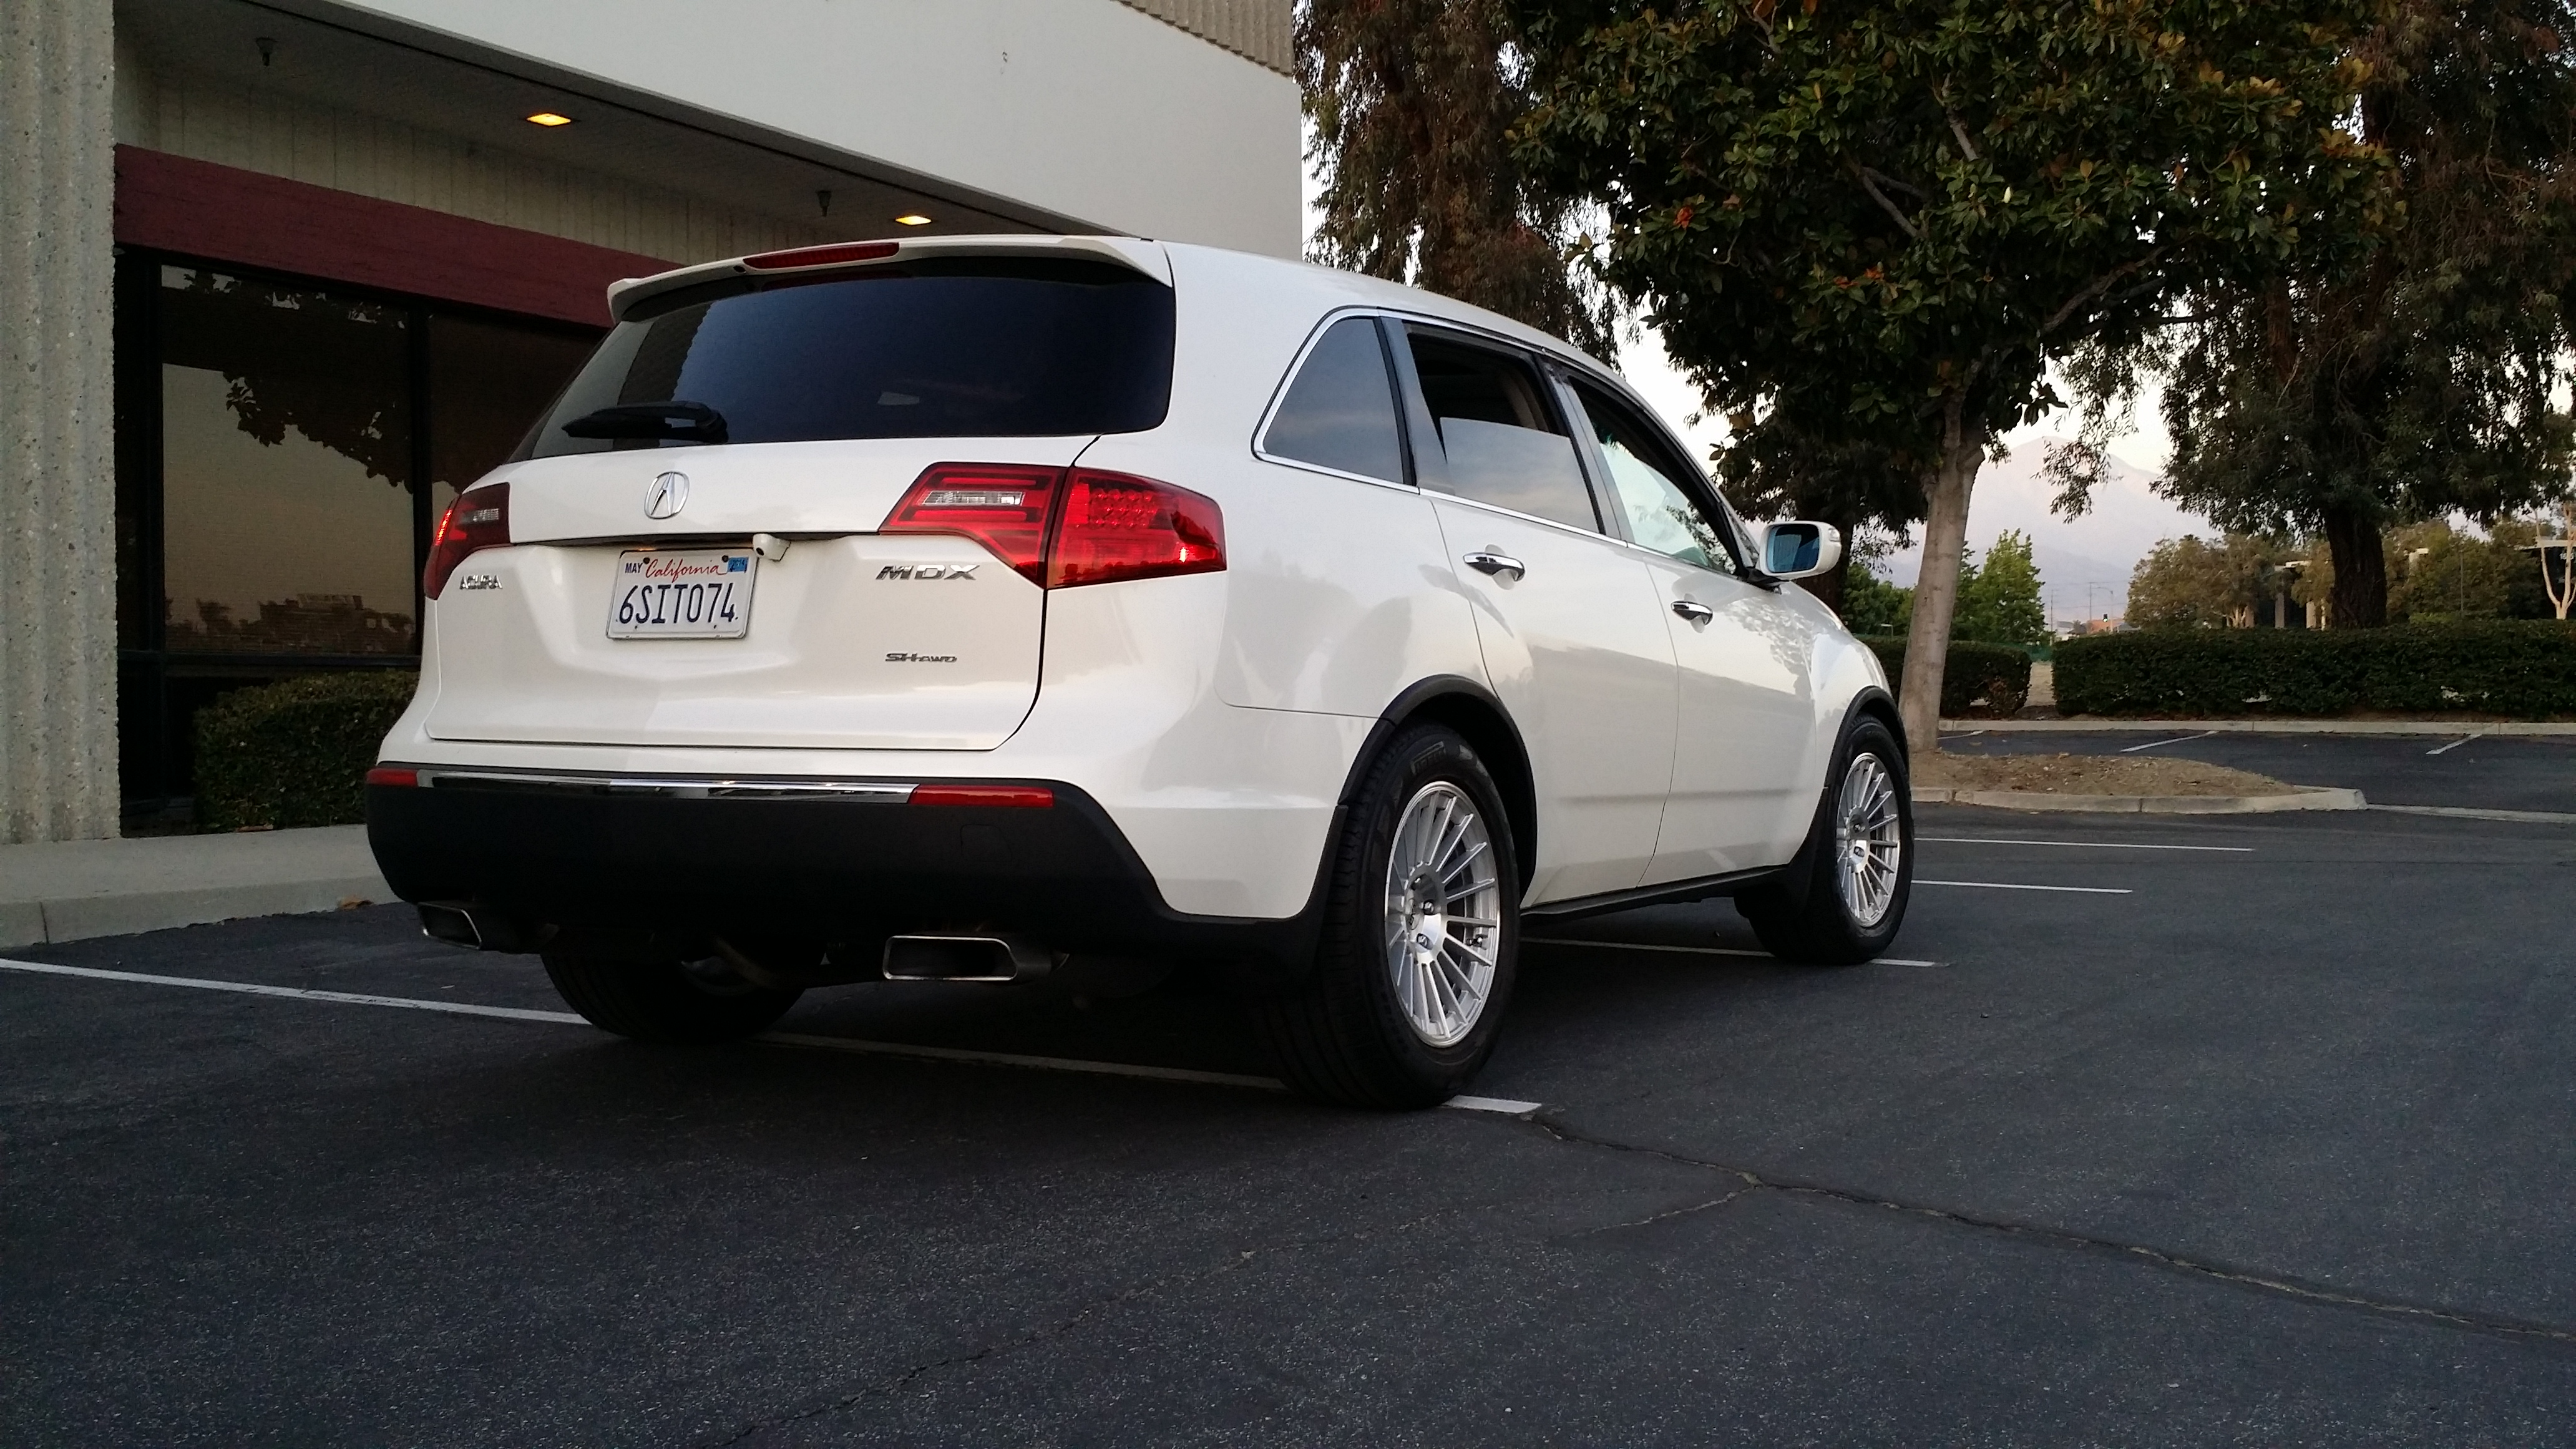 Pics Of 2nd Generation Mdx With Aftermarket Rims Page 32